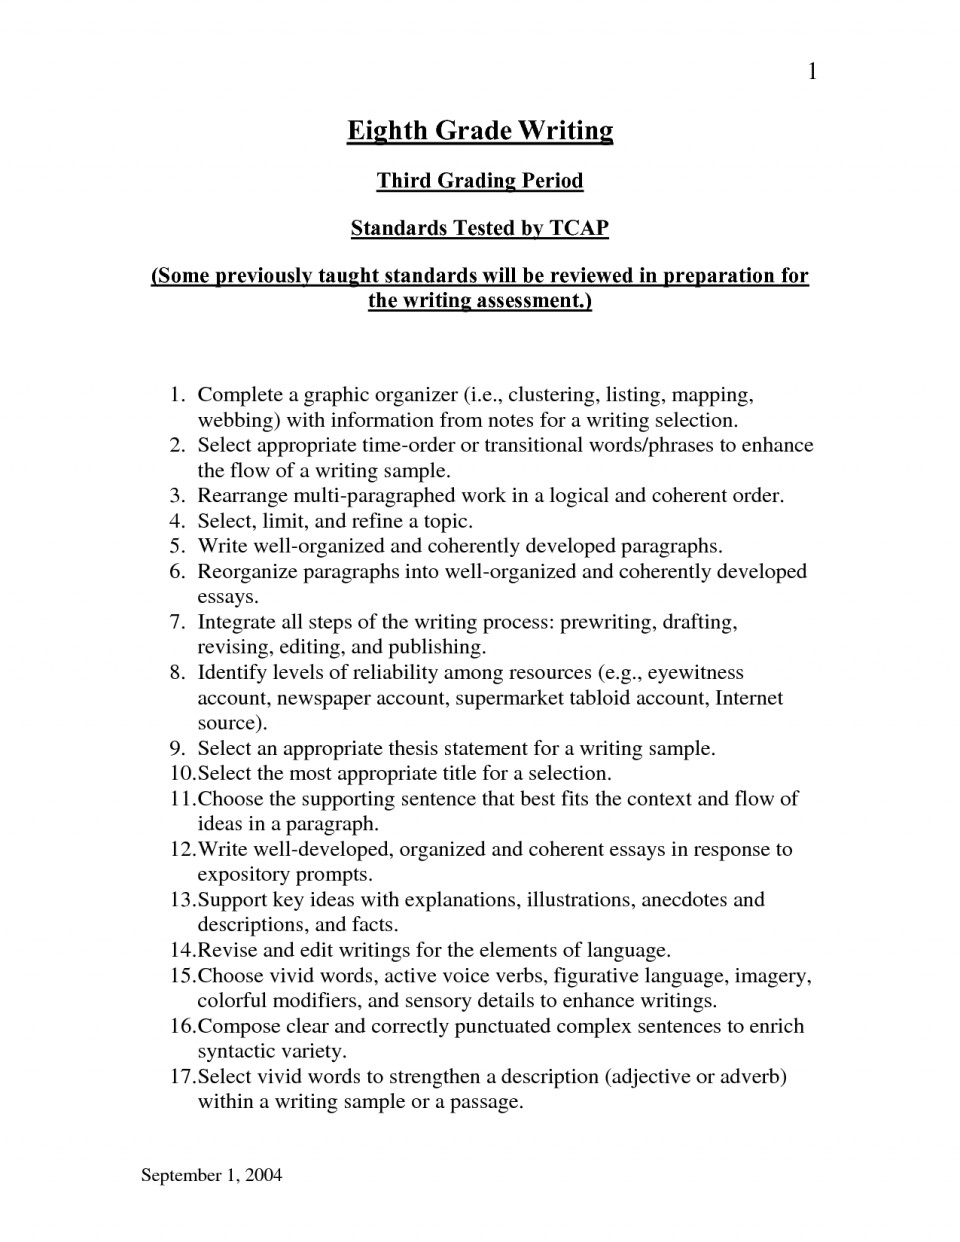 012 Essay Example What Is An Expository Writing Prompts For High School 1088622 Magnificent Gcu Examples 4th Grade 960